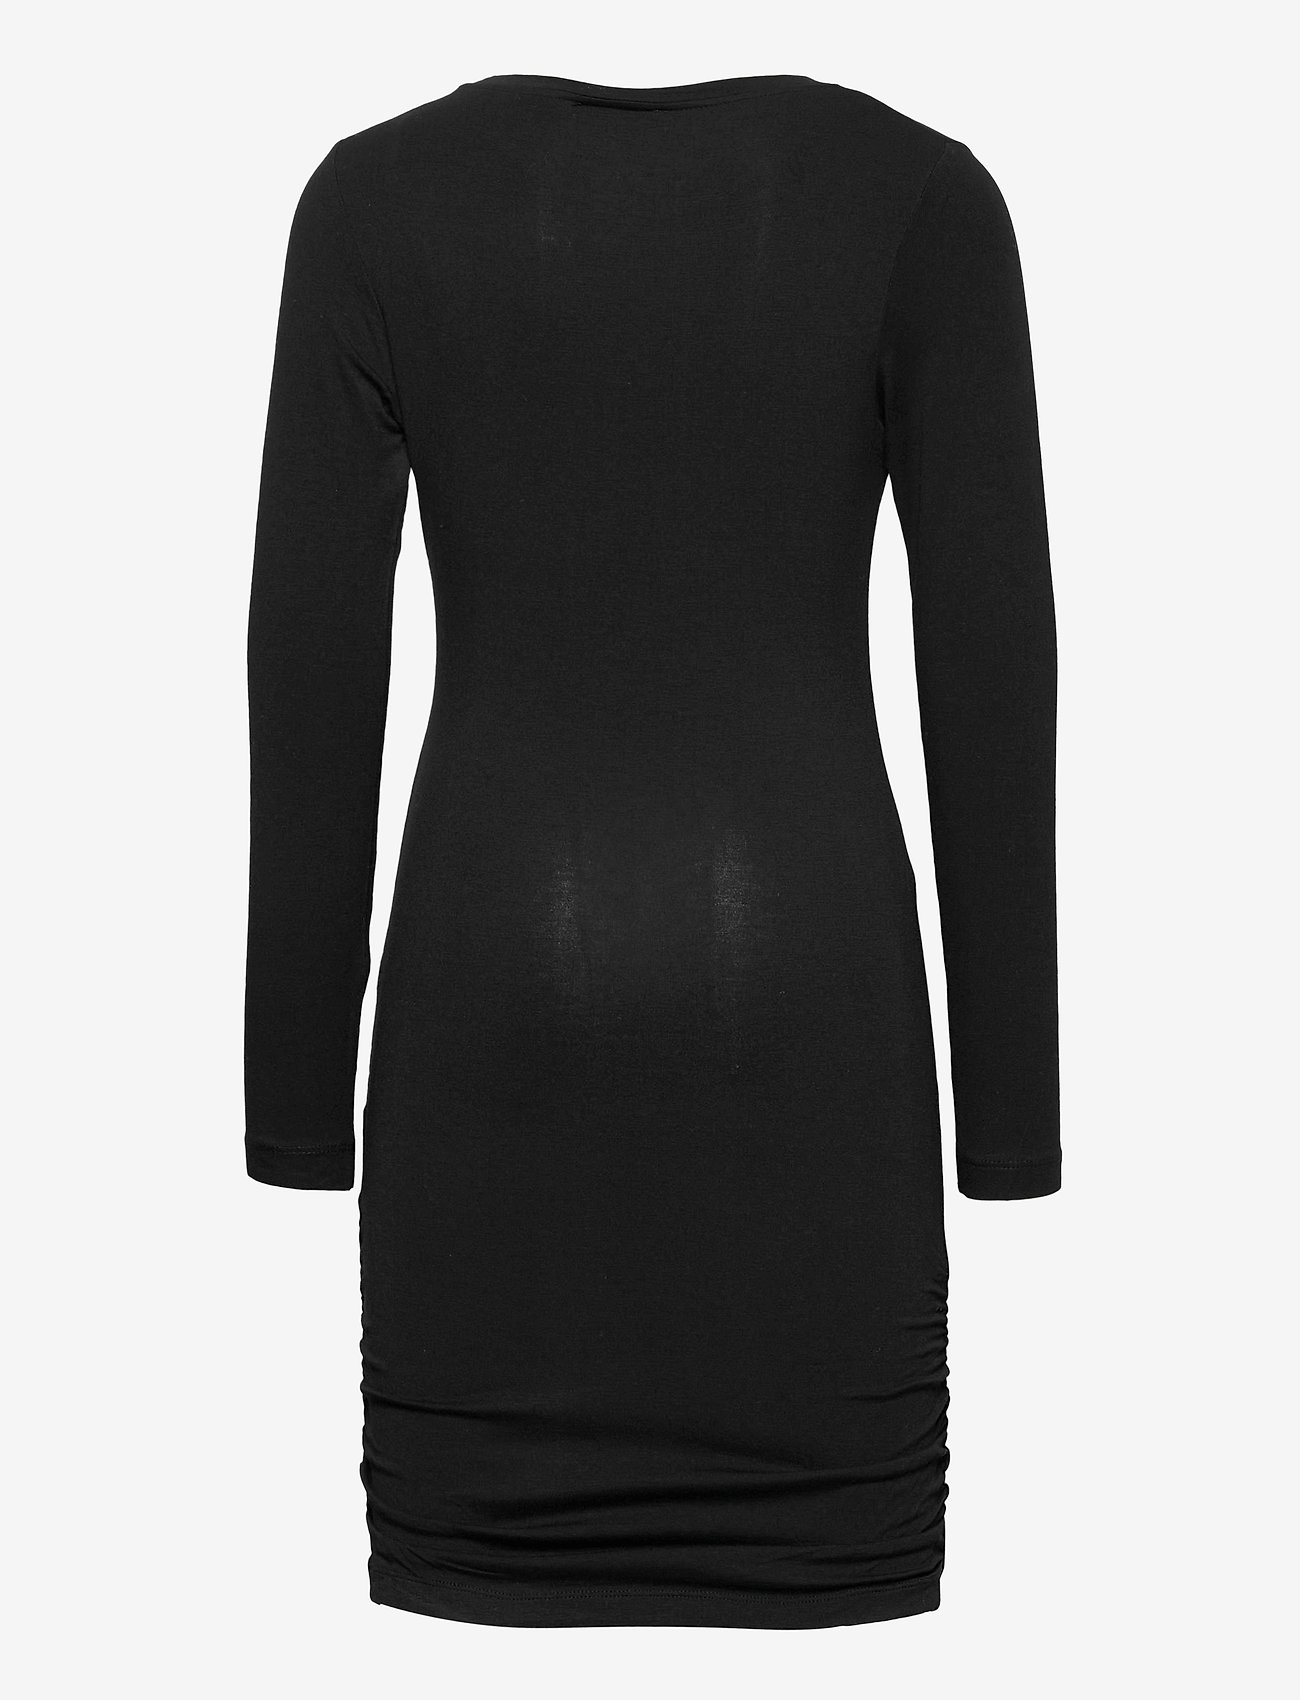 The New - BASIC L_S DRESS NOOS SUSTAINABLE - kleider - black - 1